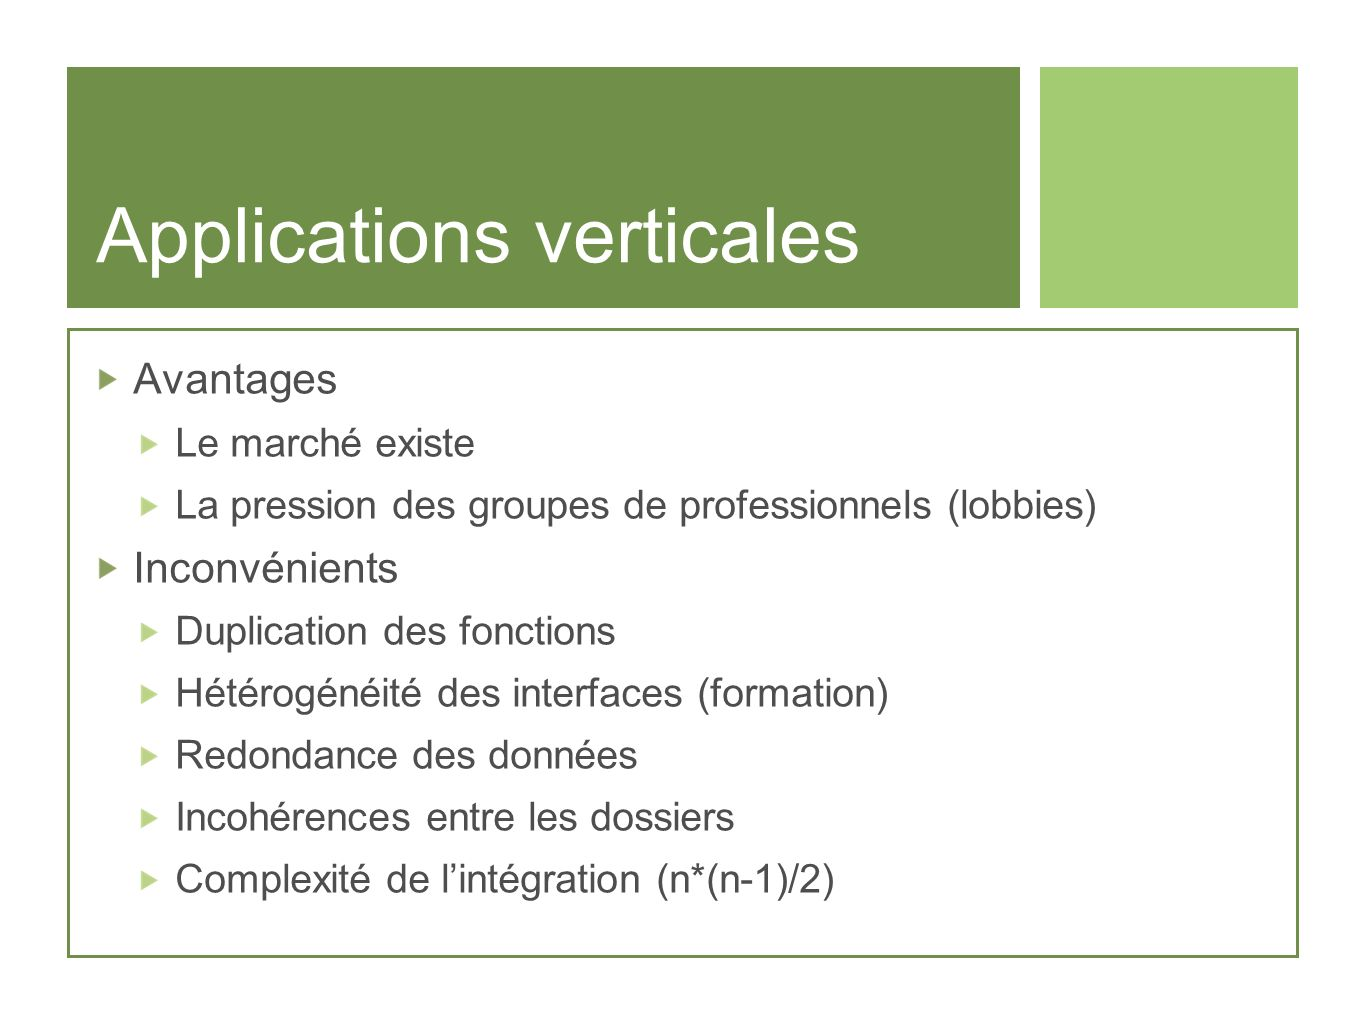 Applications verticales